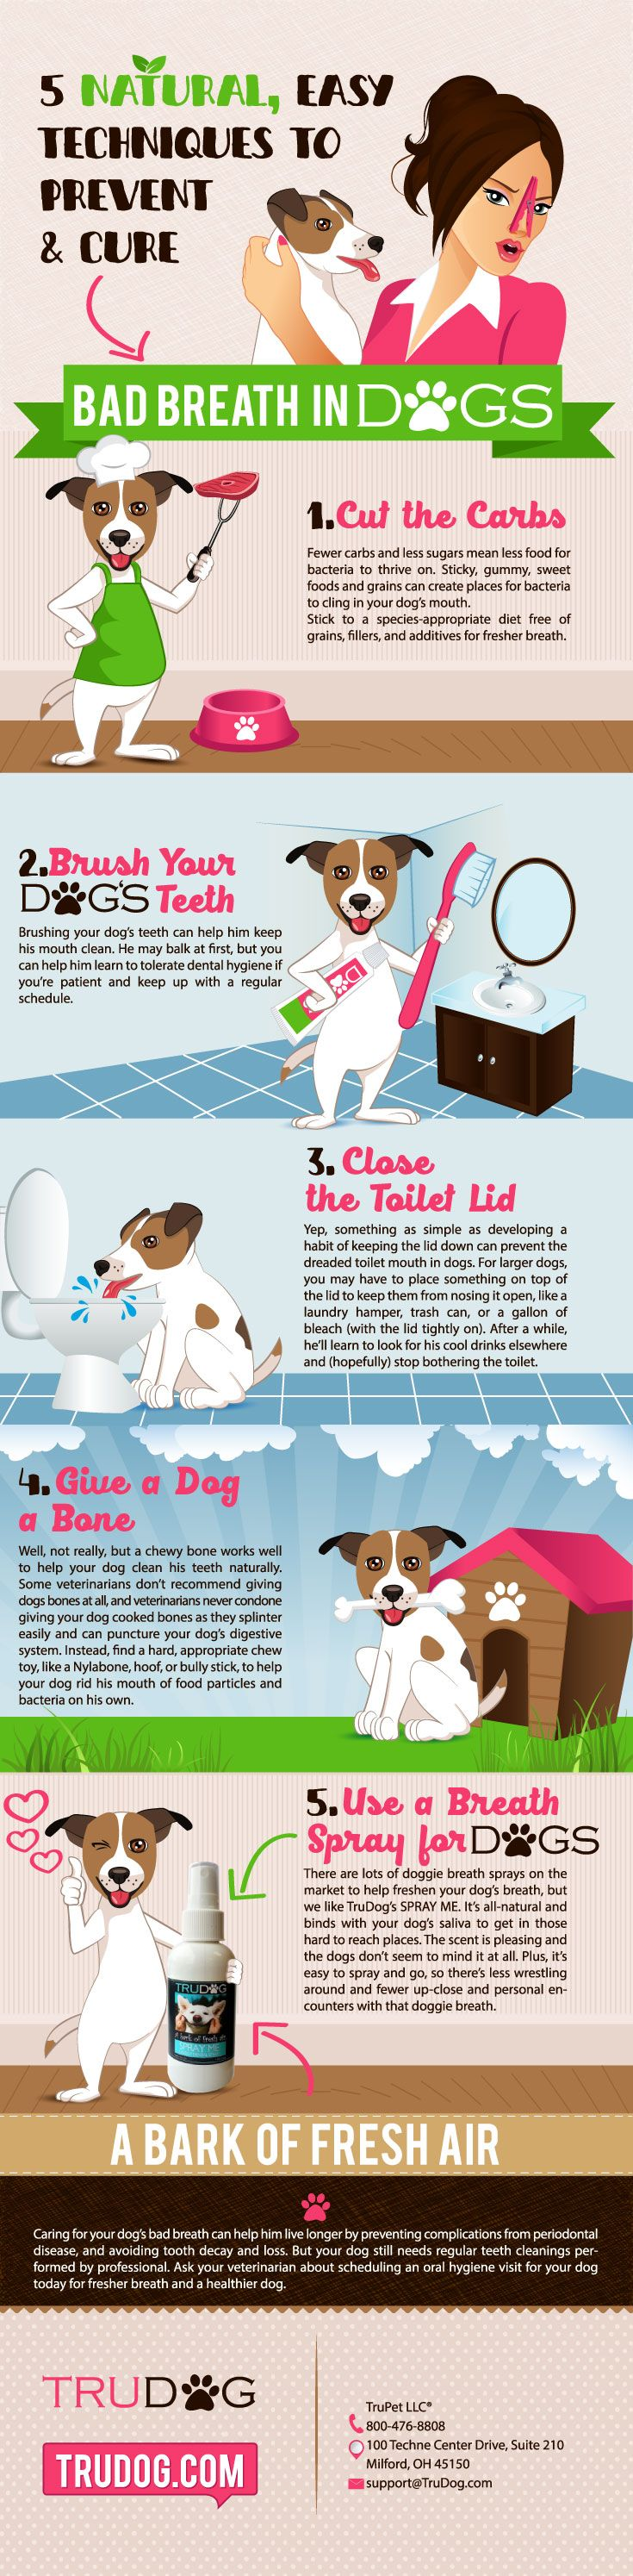 Discover 5 Natural/Easy Techniques to Prevent & Cure Bad Breath in Dogs http://trudog.com/home/5-natural-easy-techniques-to-prevent-and-cure-bad-breath-in-dogs/?utm_source=Pinterest&utm_medium=social&utm_campaign=Jeremy%20Pinterest&utm_term=organic&utm_content=5%20Techniques%20new